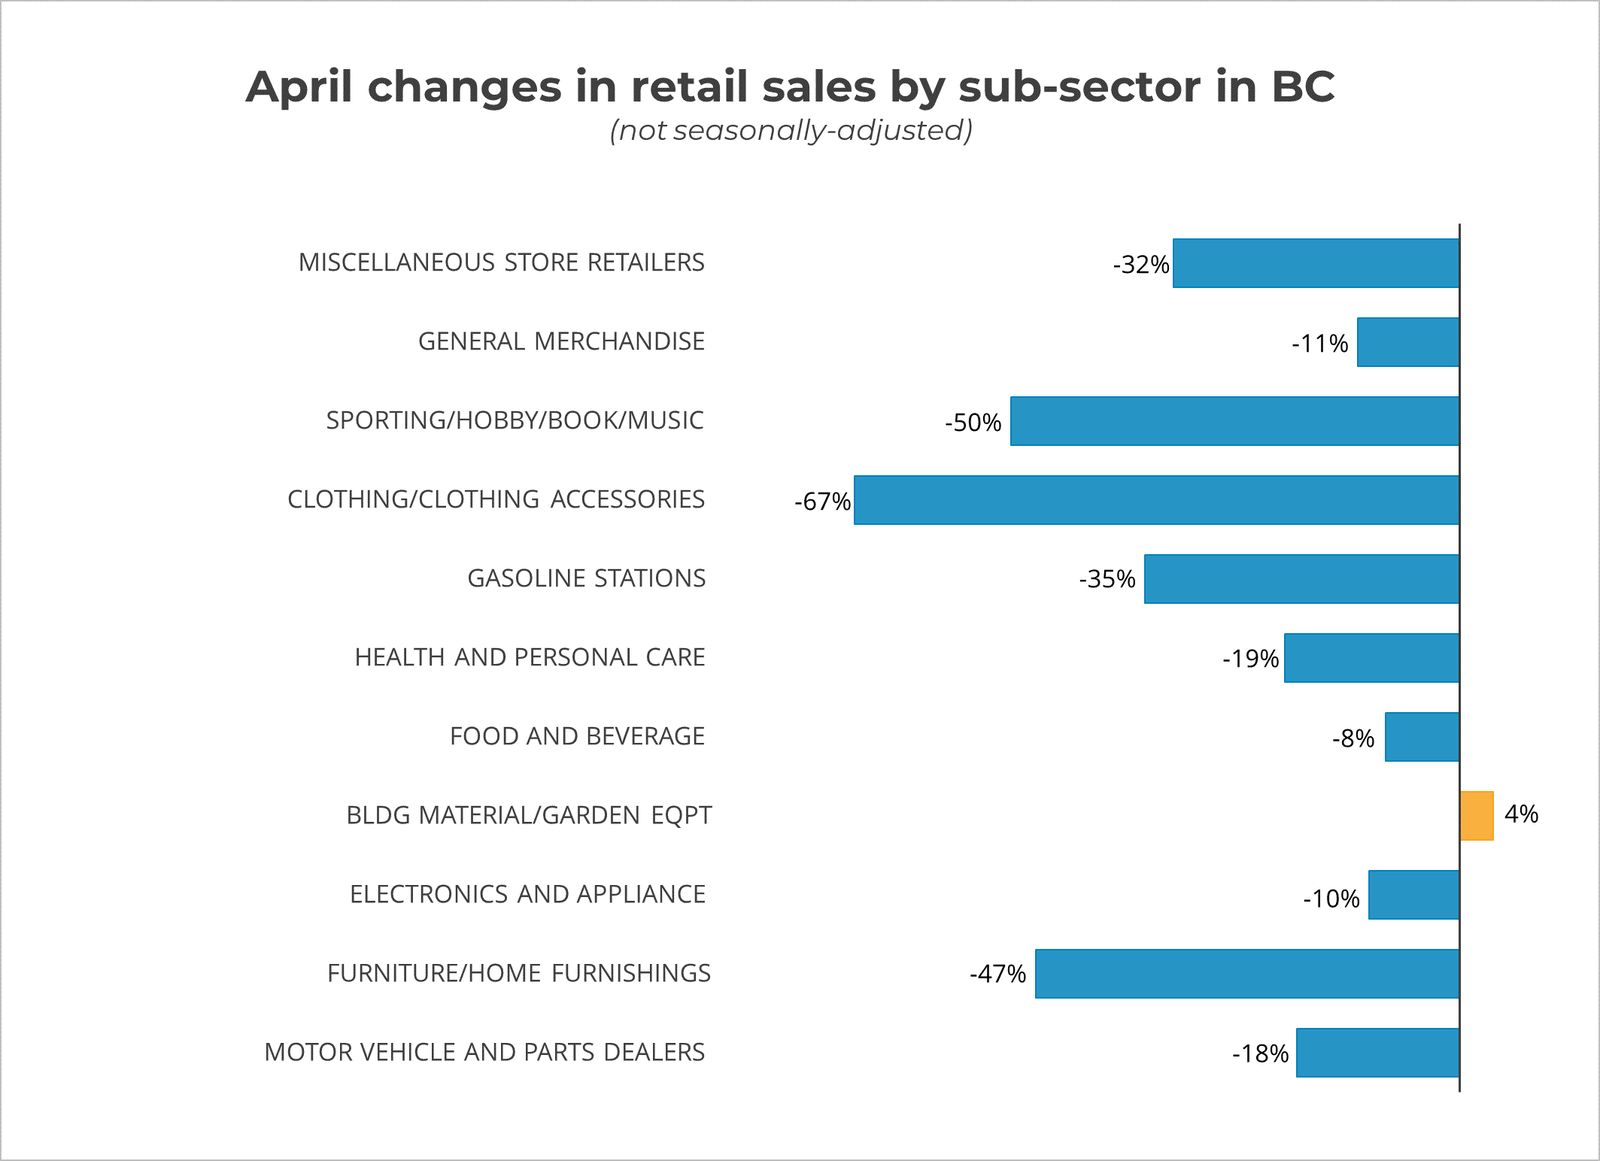 April Changes in Retail Sales by Sector